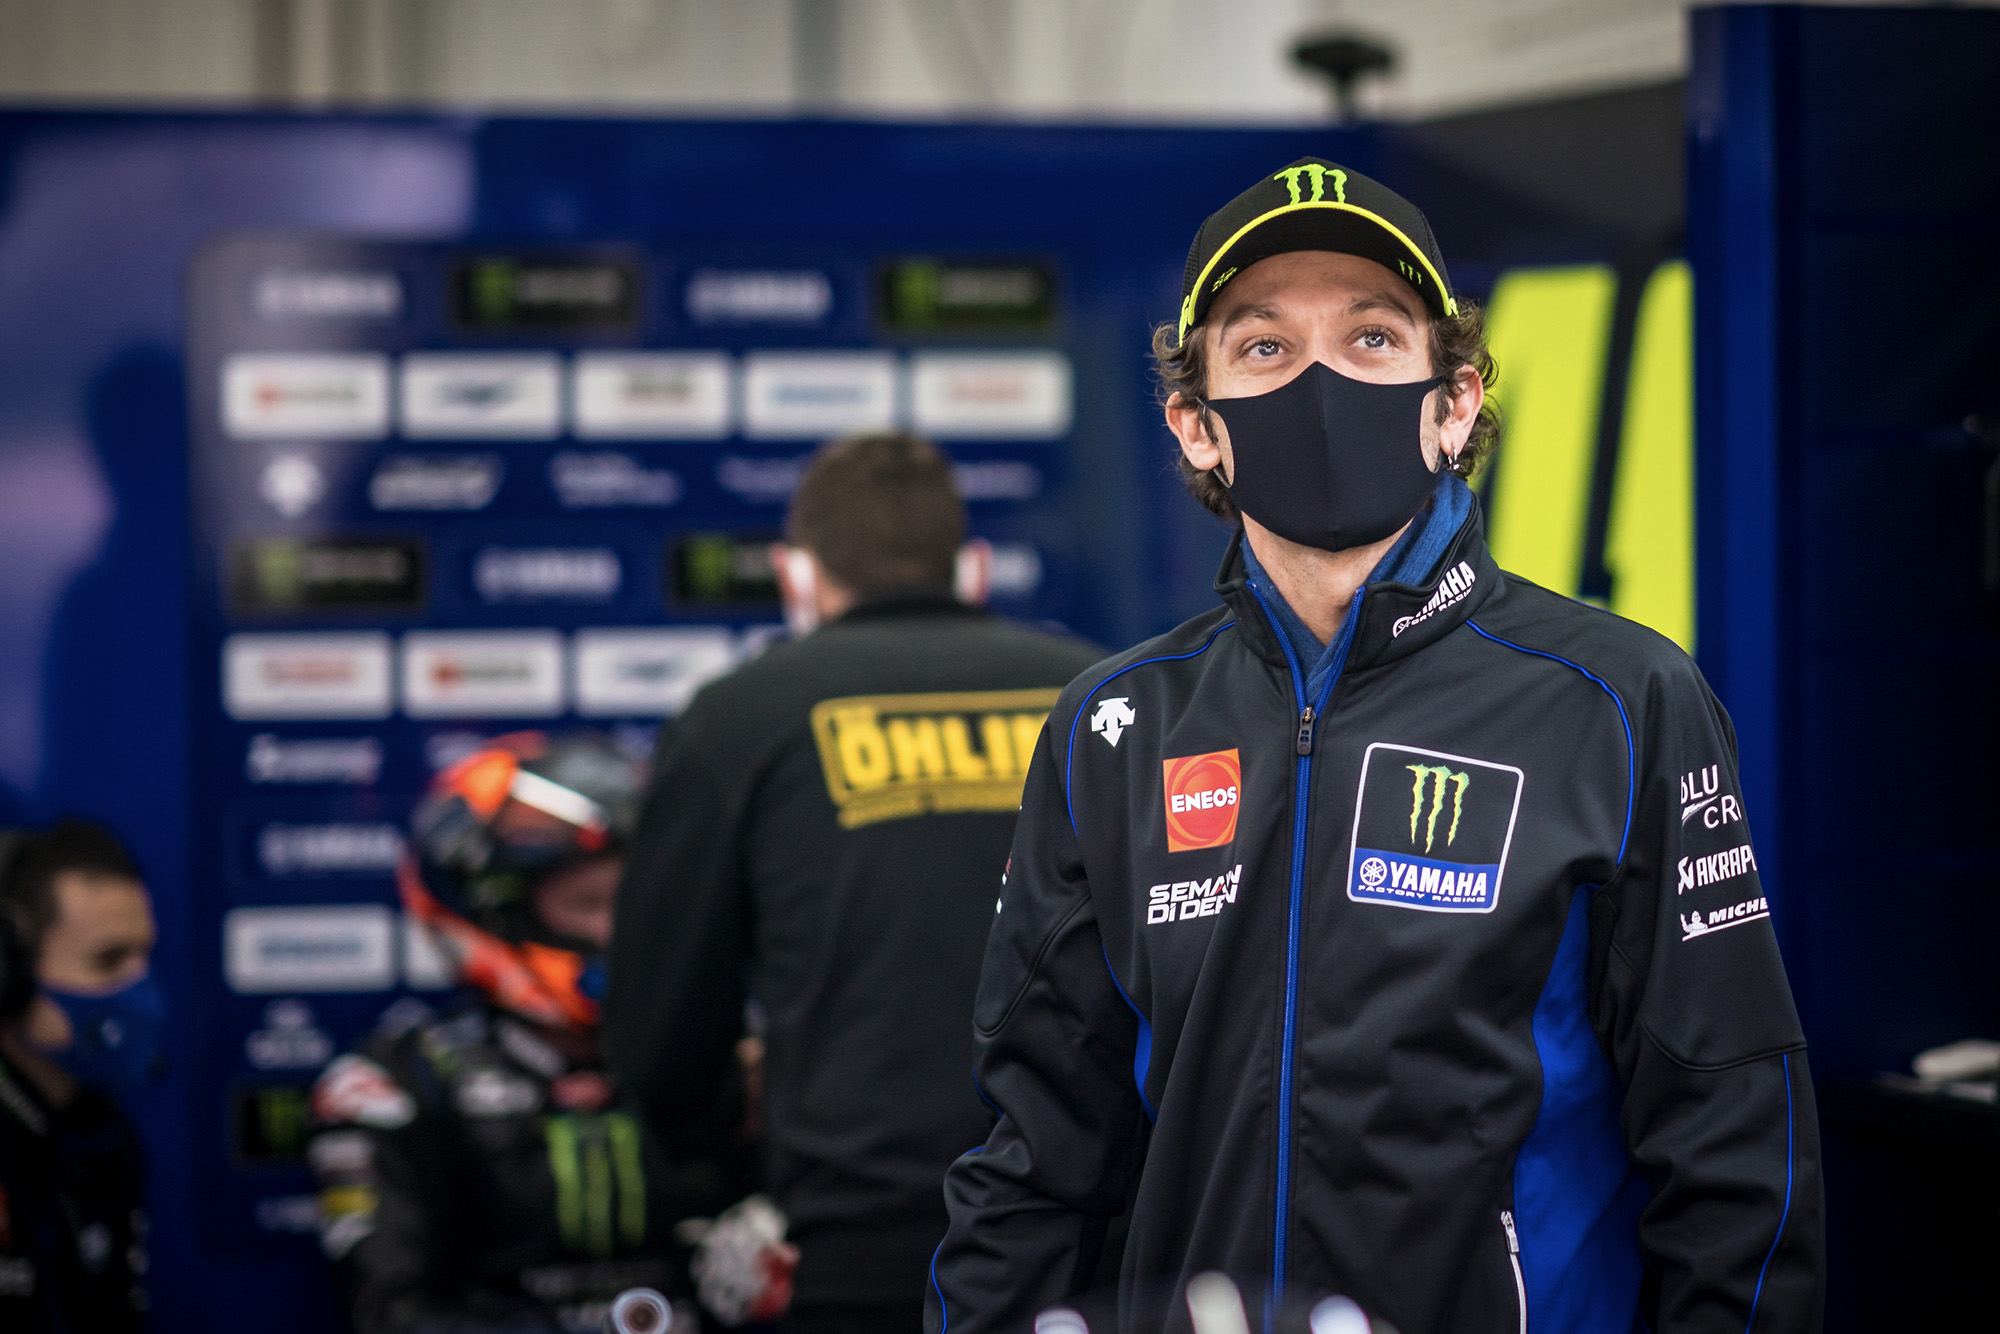 Valentino Rossi MotoGP return confirmed after negative Covid test